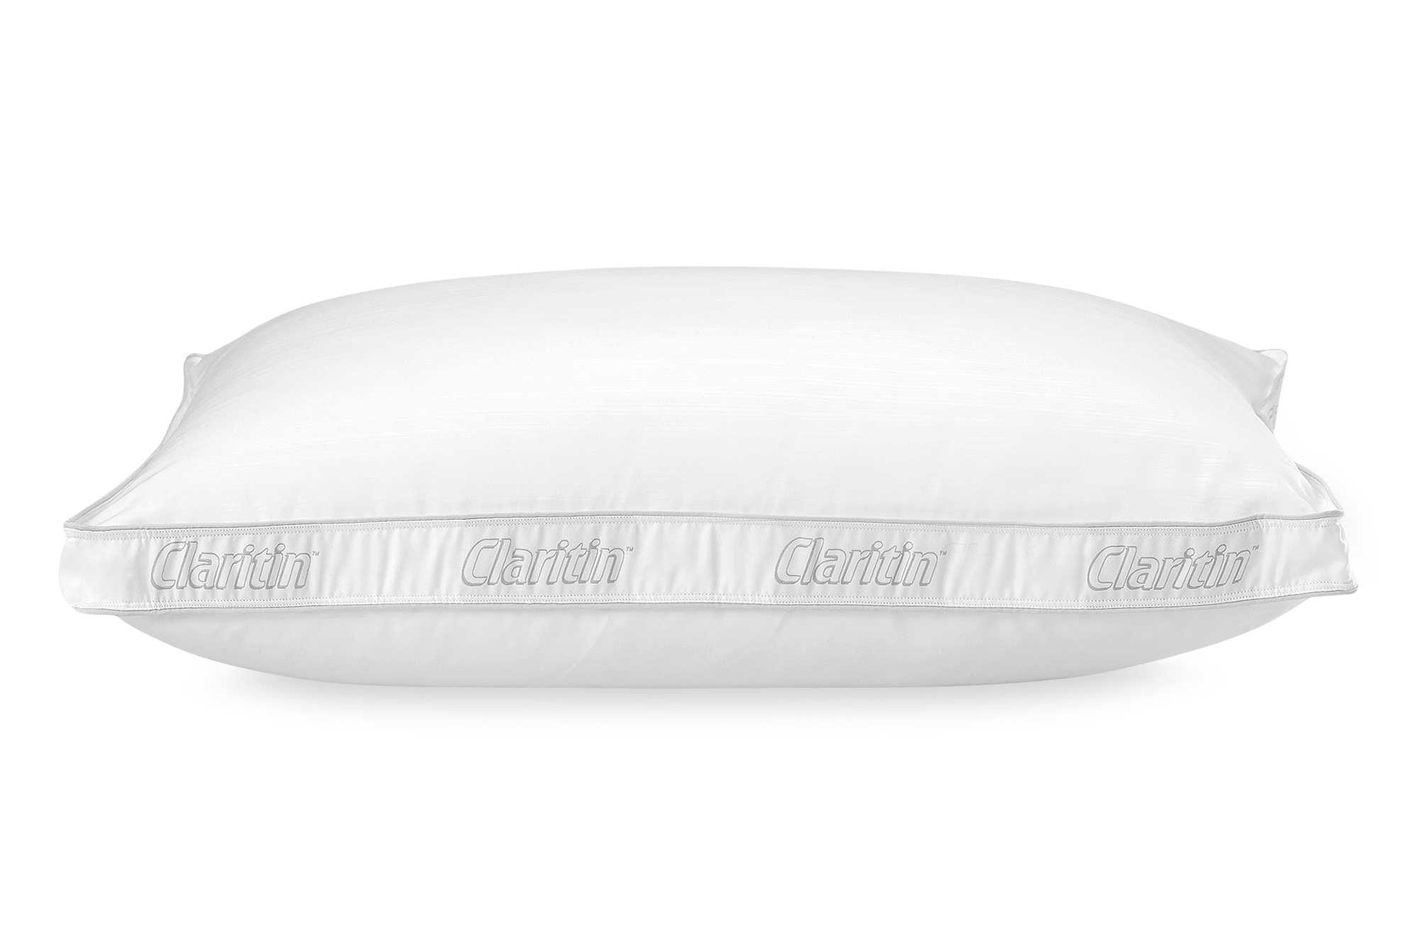 The Turgeon-suggested Claritin pillow has some (surprise) hypoallergenic  advantages going for it; the polyester cover blocks various household